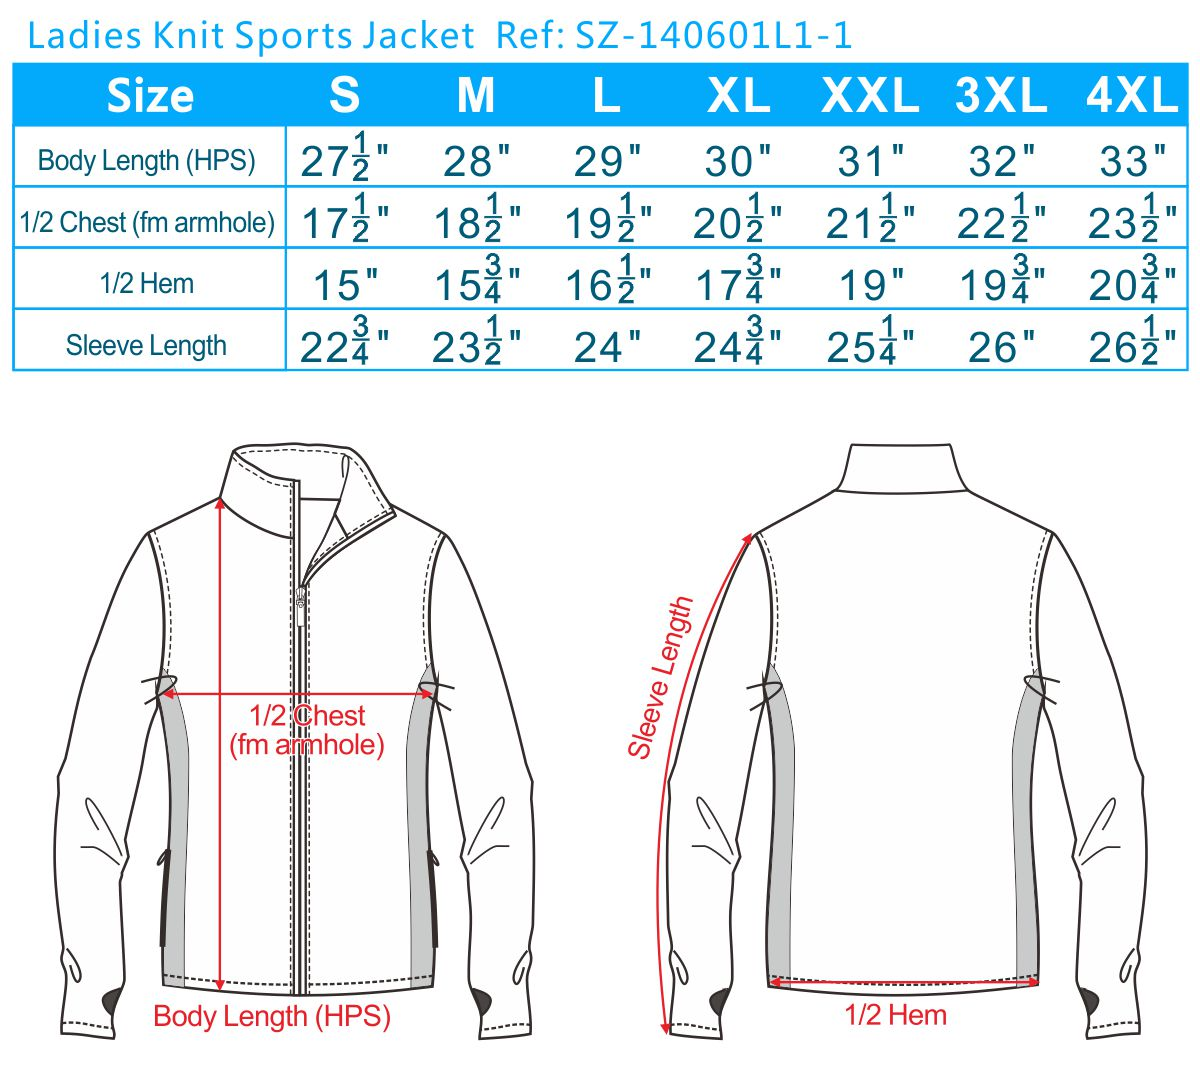 Ladies Knit Sports Jacket